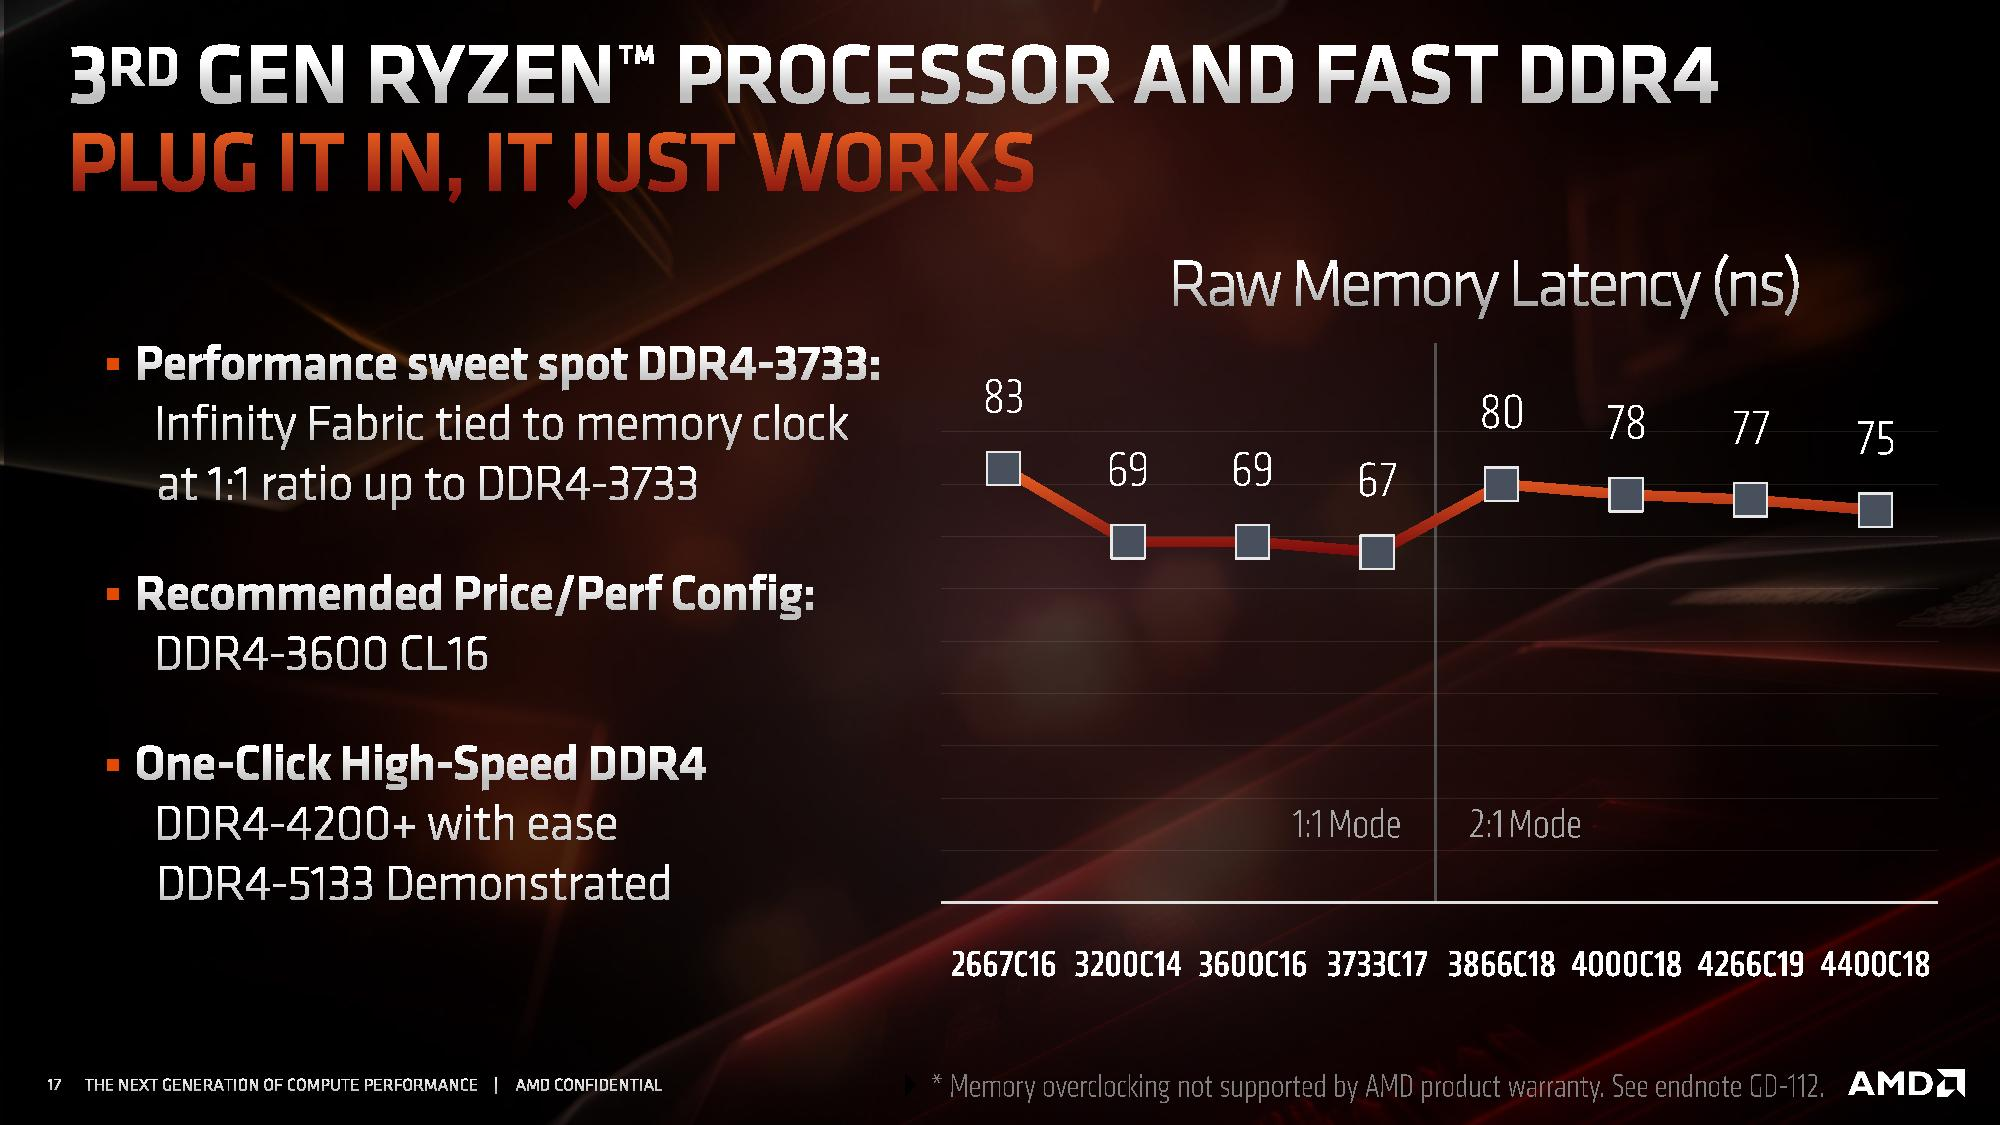 Memory Hierarchy Changes: Double L3, Faster Memory - The AMD 3rd Gen